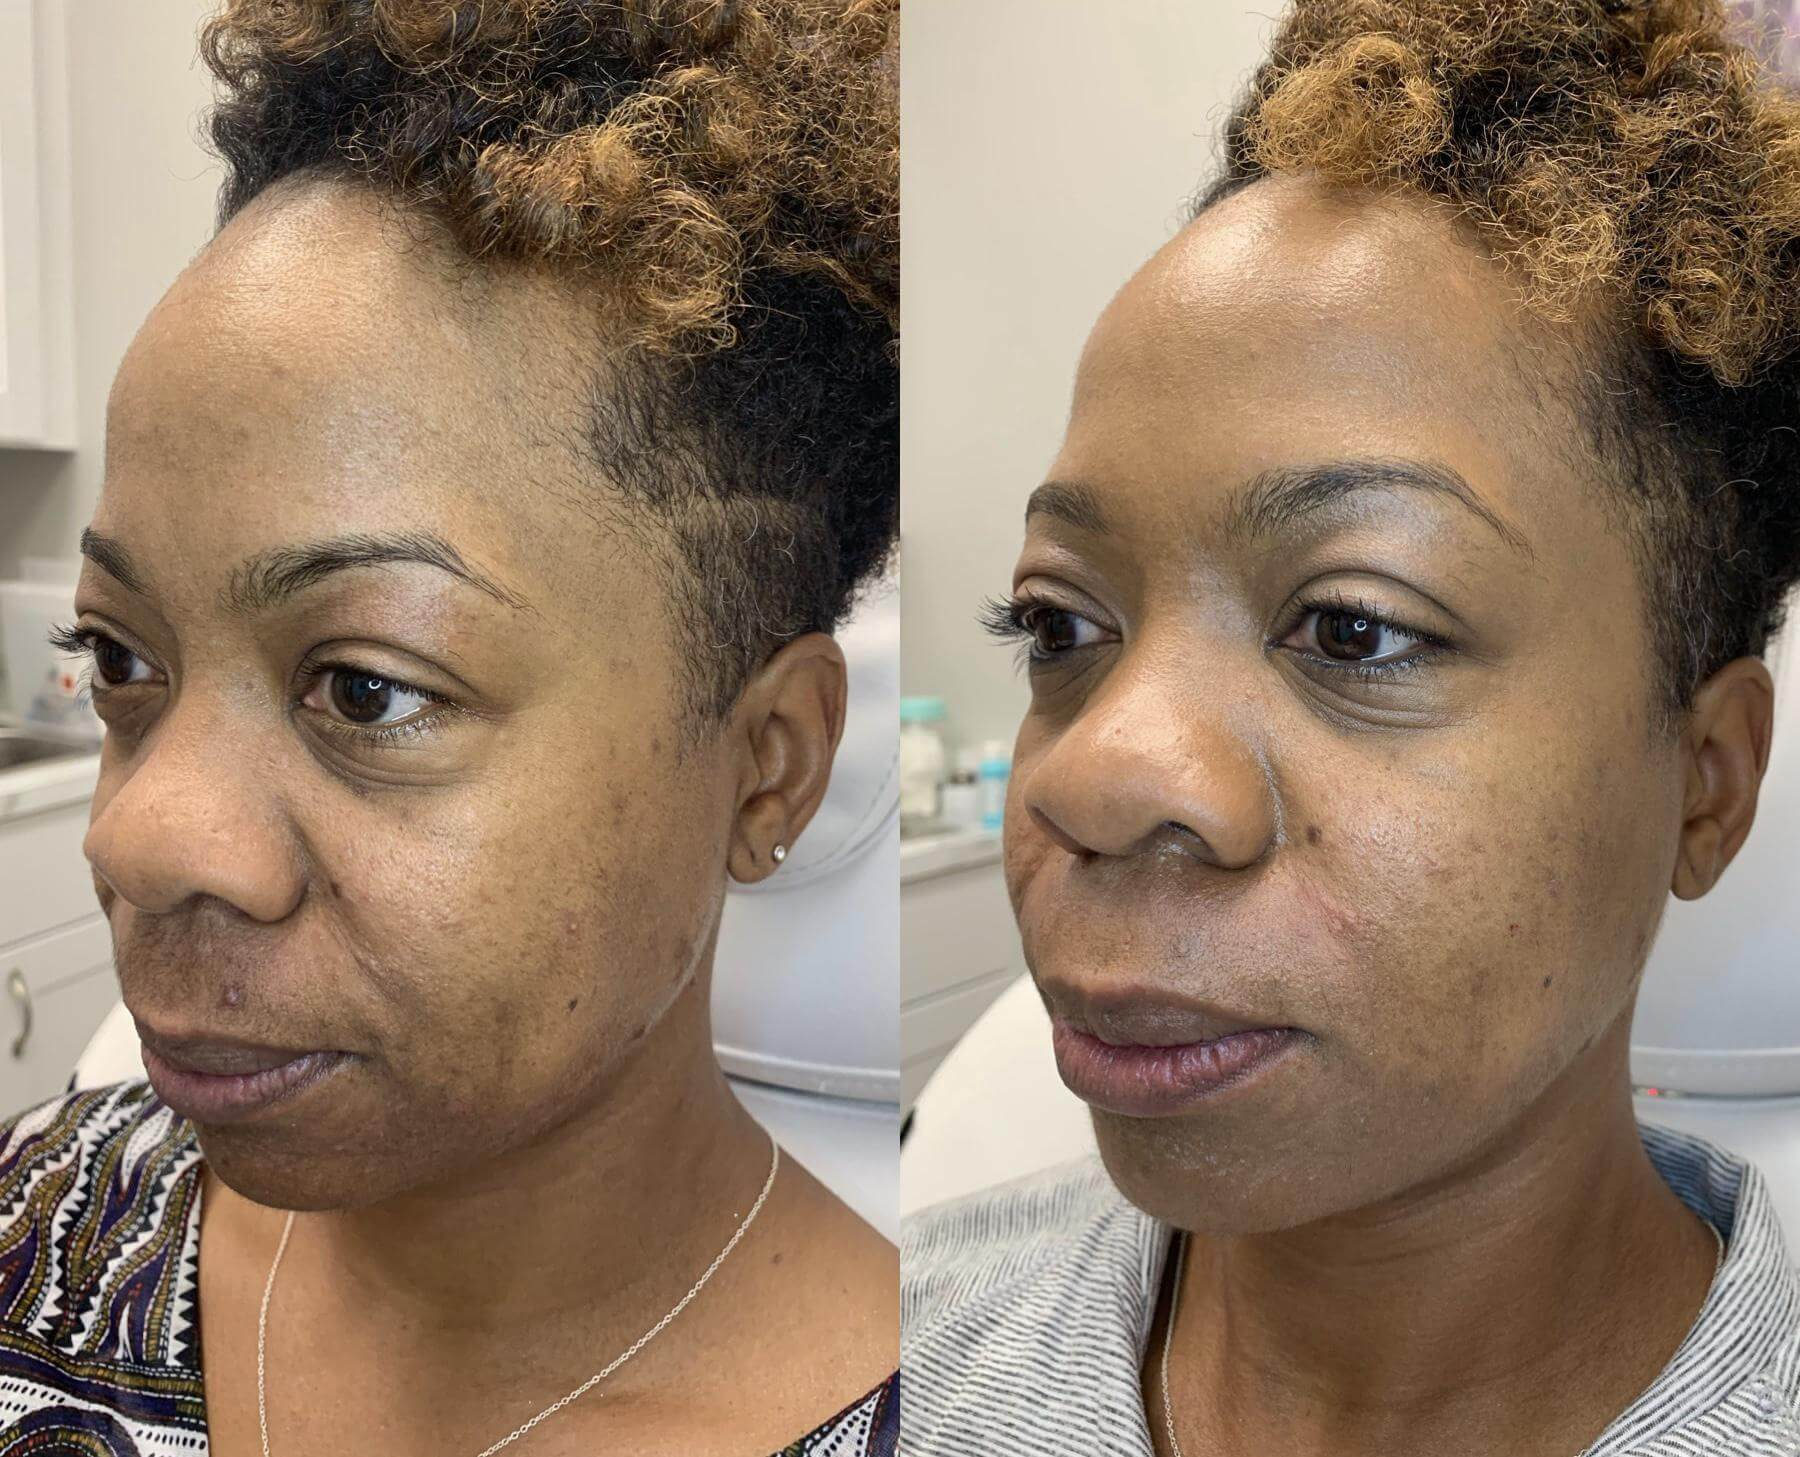 Juvederm Voluma & Ultra XC to Cheek and Nasolabial Folds